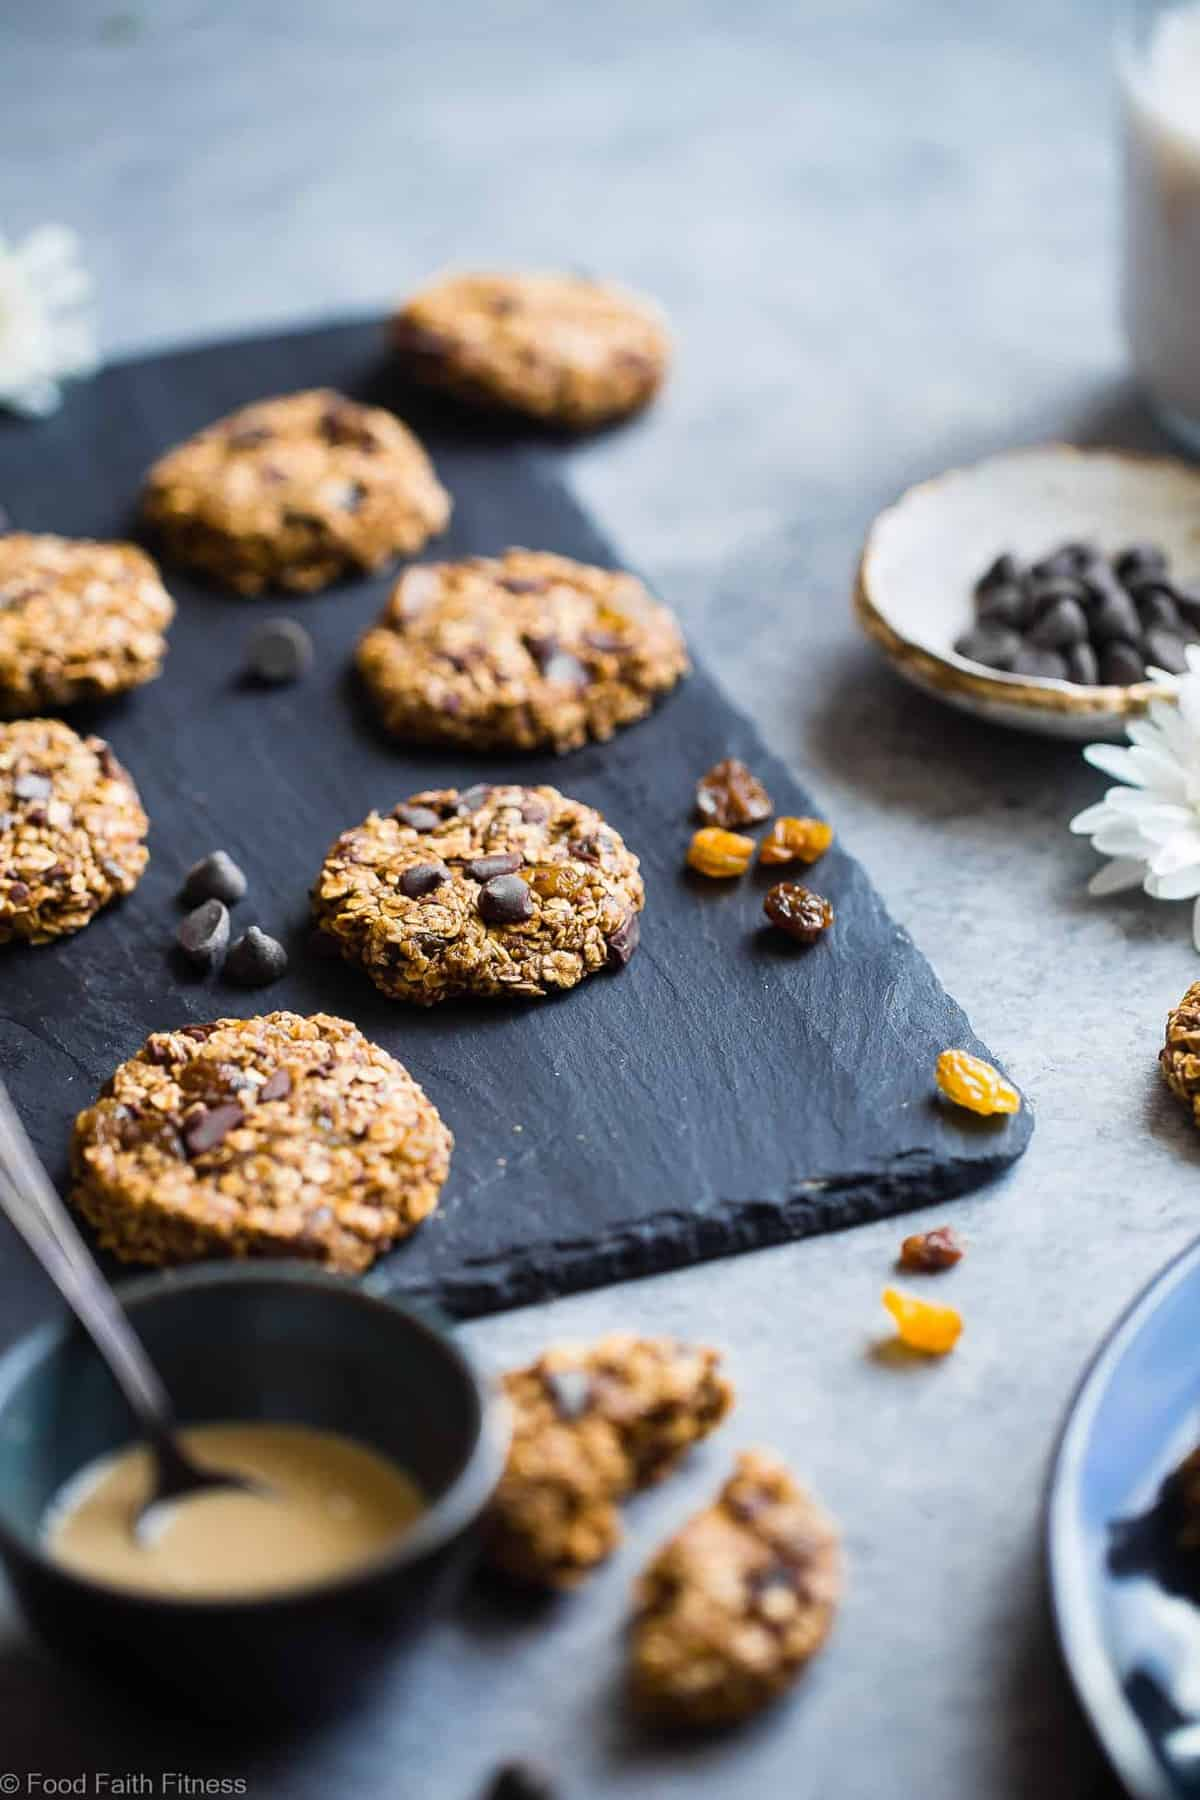 Vegan Gluten Free Oatmeal No Bake Cookies -These EASY, no bake oatmeal cookieshave a surprise tahini twist, chocolate and notes of spicy cardamon and chewy golden raisins! A healthy, gluten/dairy/egg free treat for only 110 calories! | #Foodfaithfitness | #Vegan #NoBake #Healthy #ChocolateChip #Glutenfree